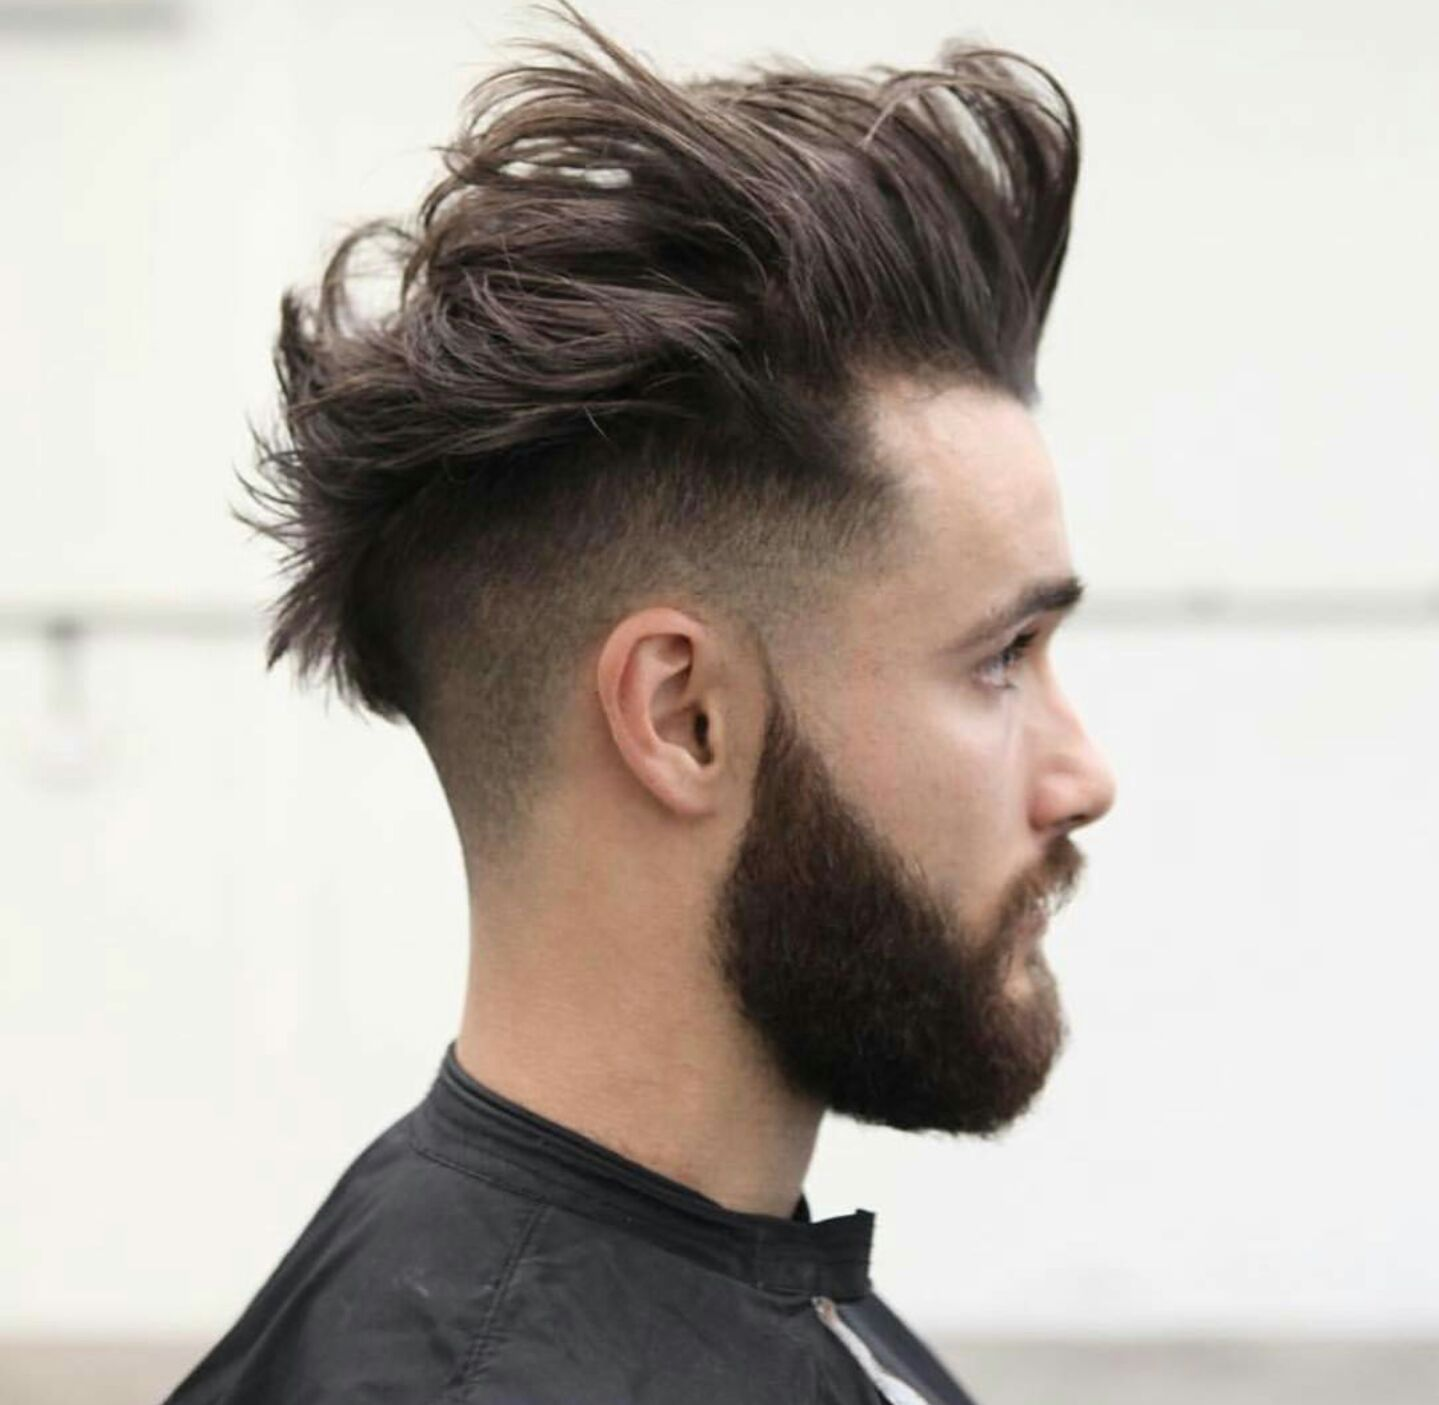 pinprofile hair design on gents cuts/styles & fade's | pinterest